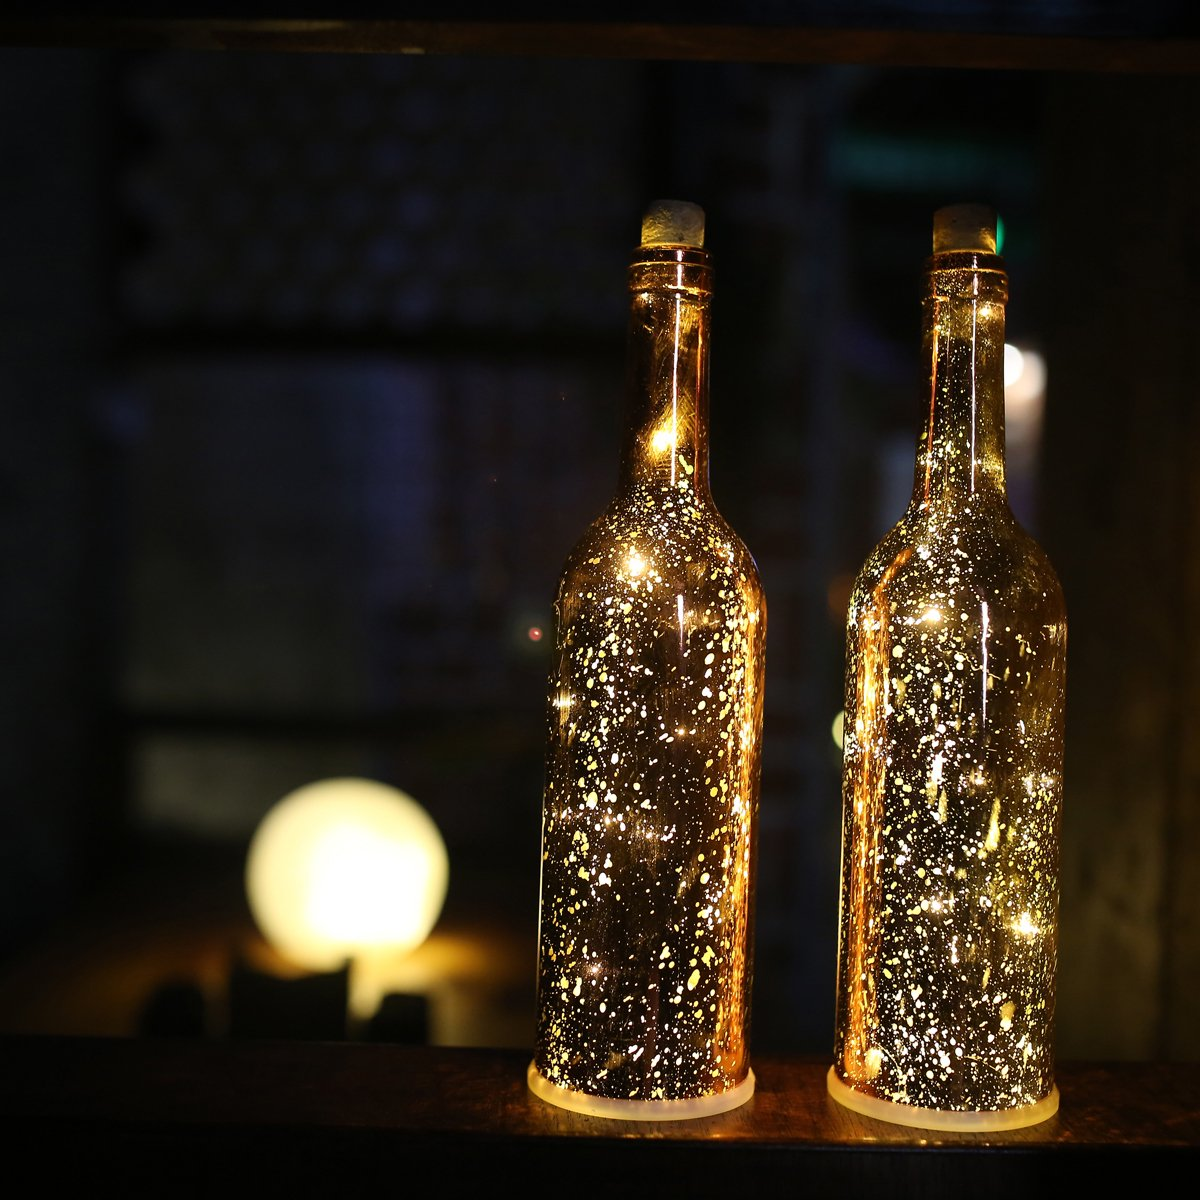 glass bottle lighting wine store home our feedback ask question product description bottle string light acelife wine led starry lights kit glass